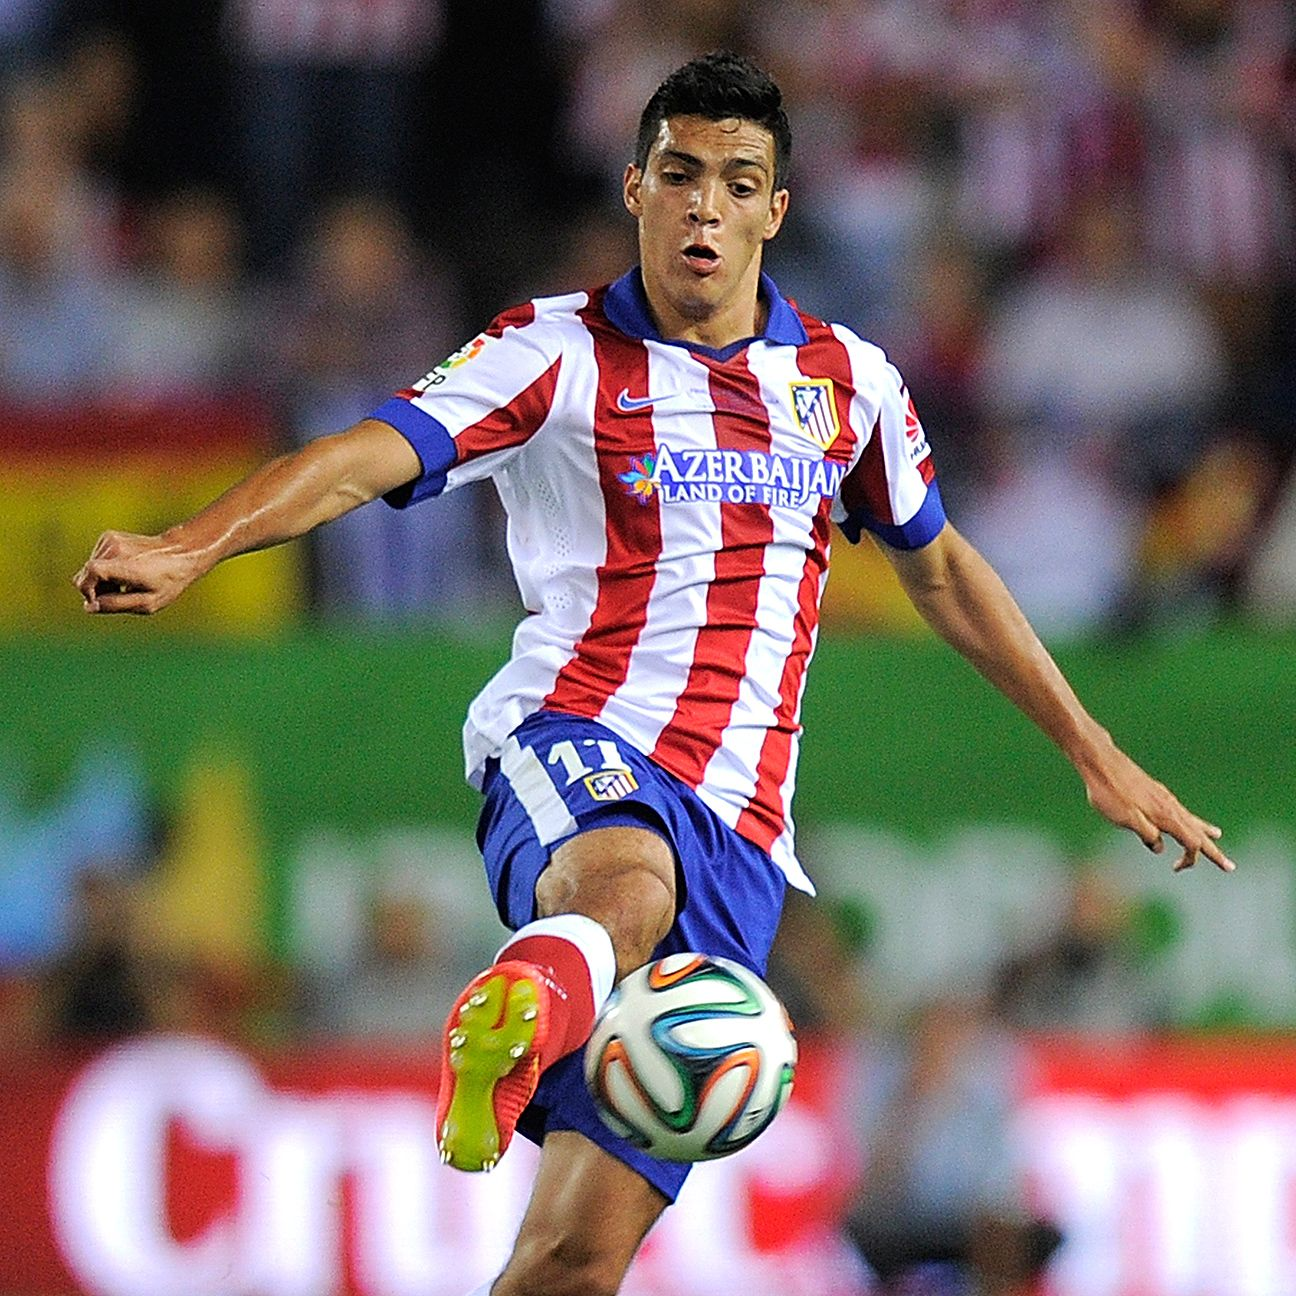 Former Club America striker Raul Jimenez has failed to make much of an impact at the Vicente Calderon.